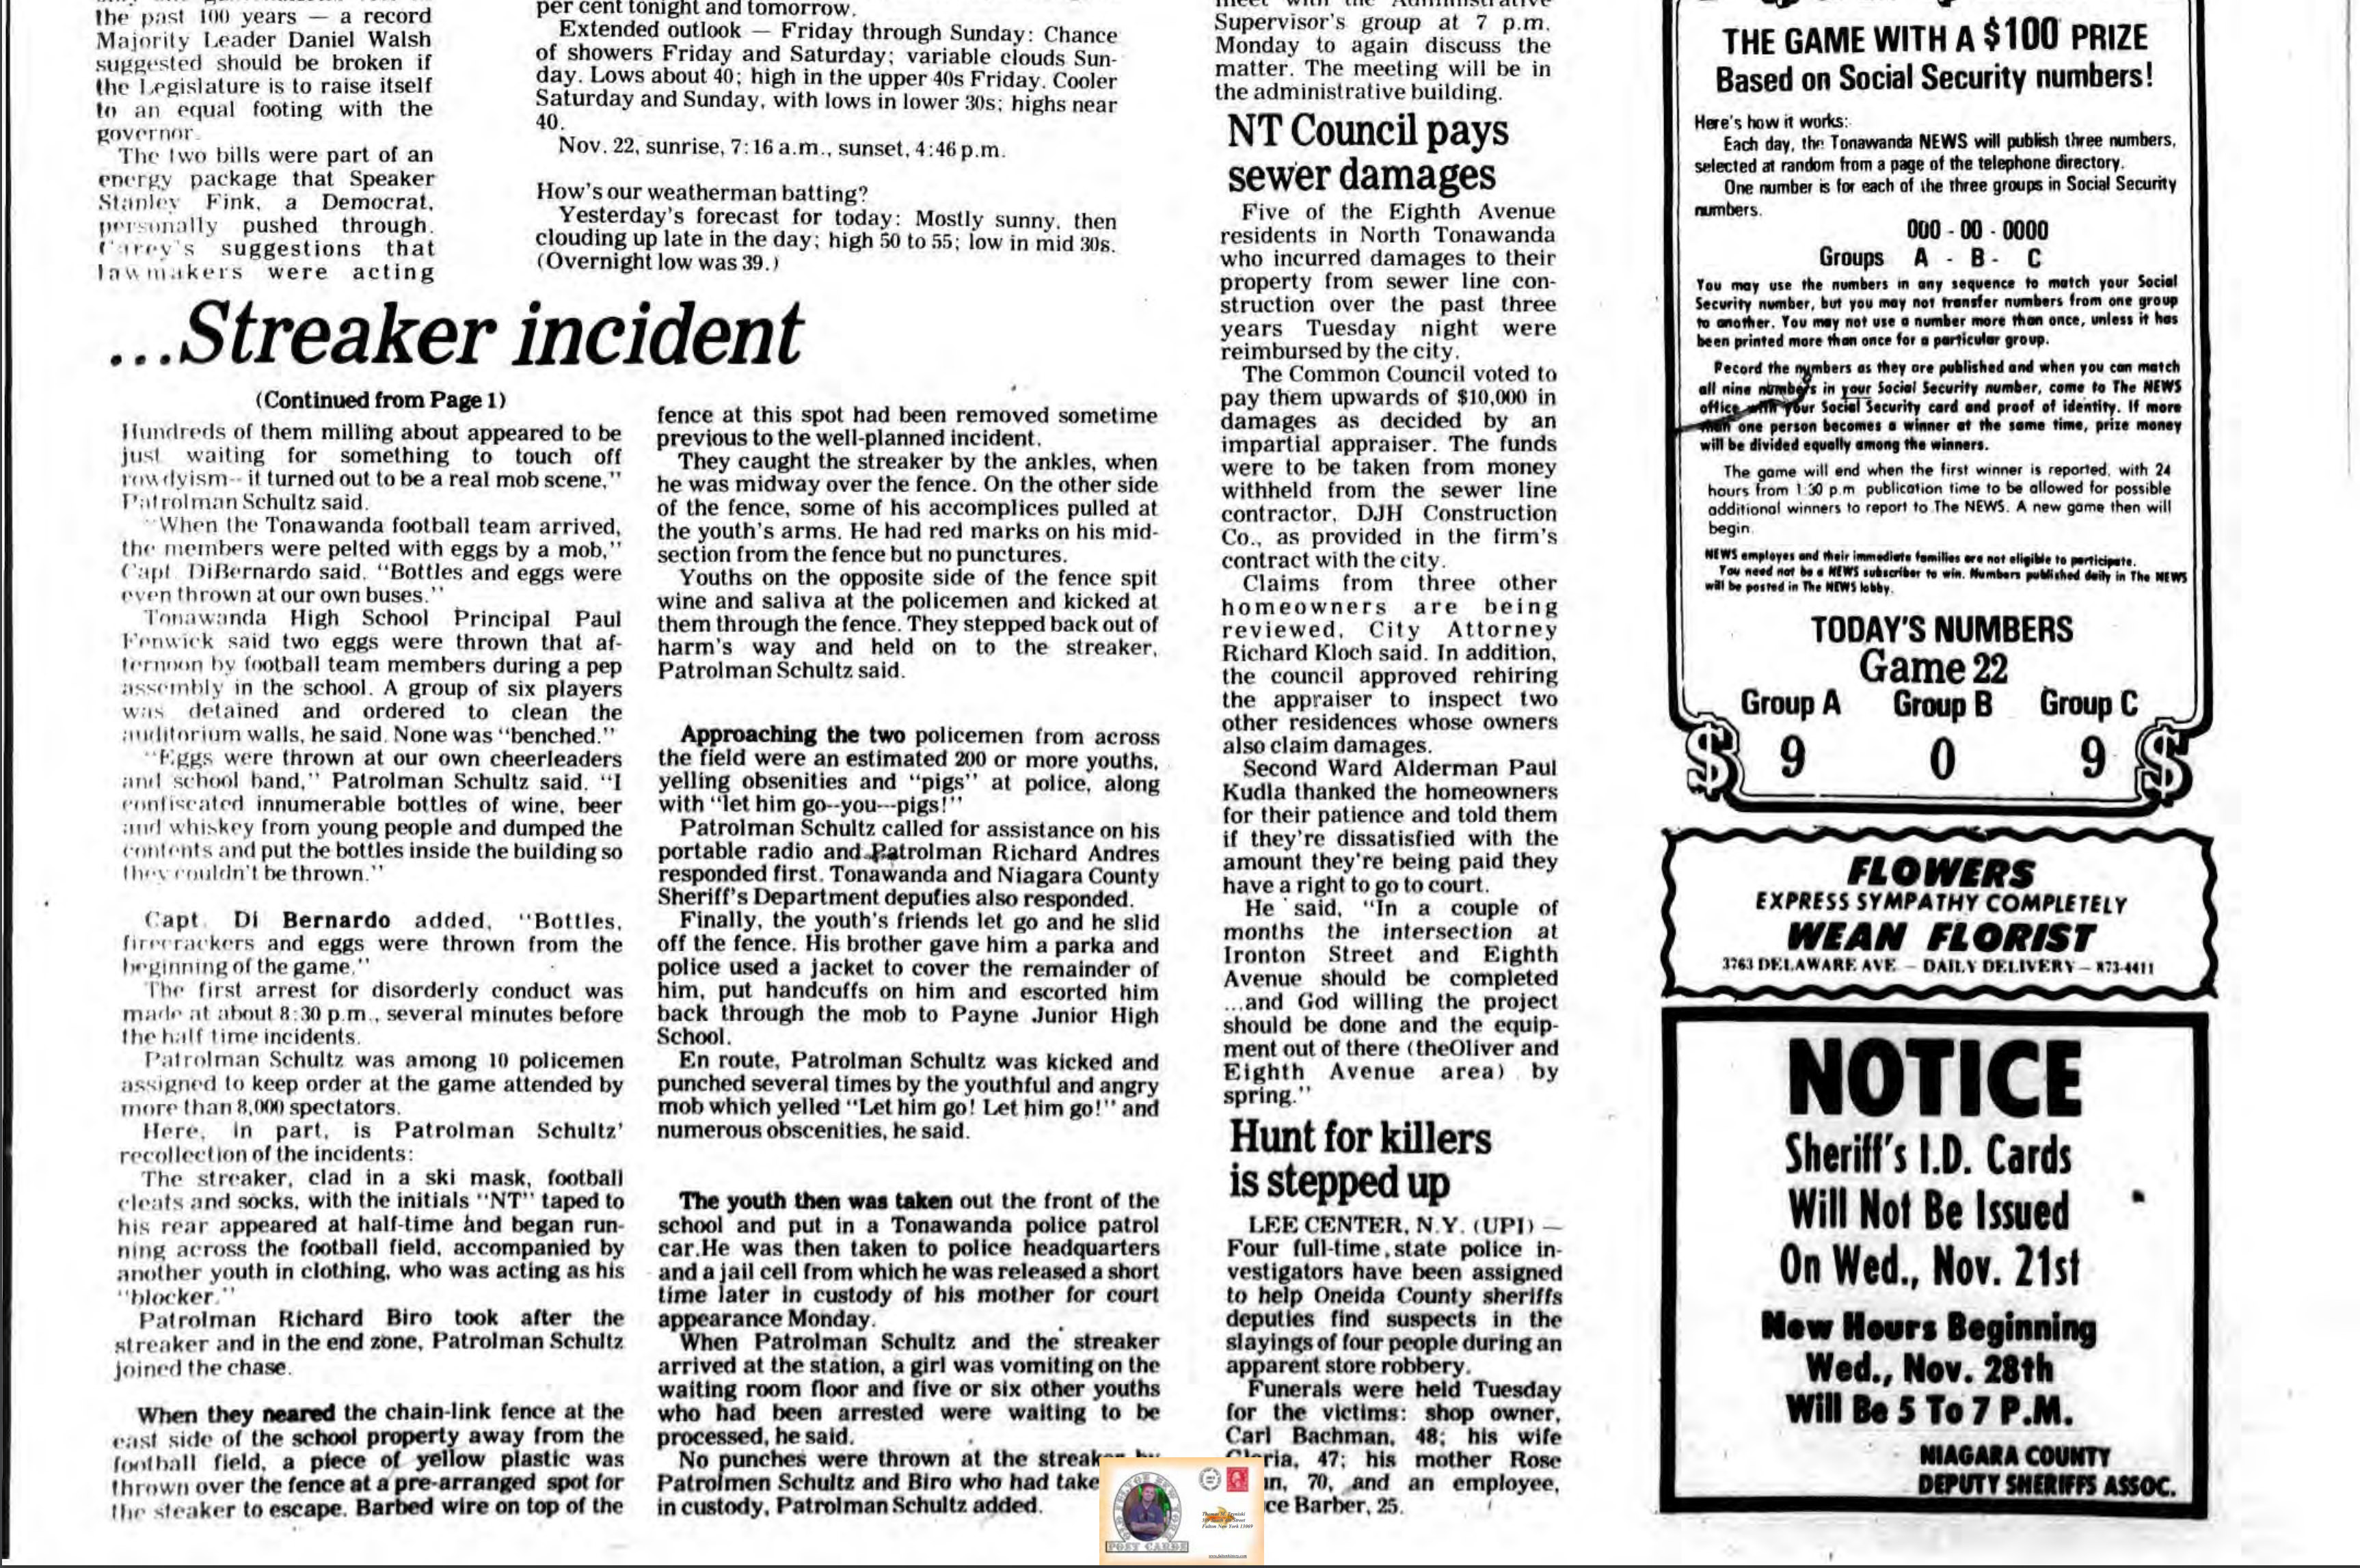 Streaker incident, article 2 of 2 (Tonawanda News, 1979-11-21, cover missing).jpg